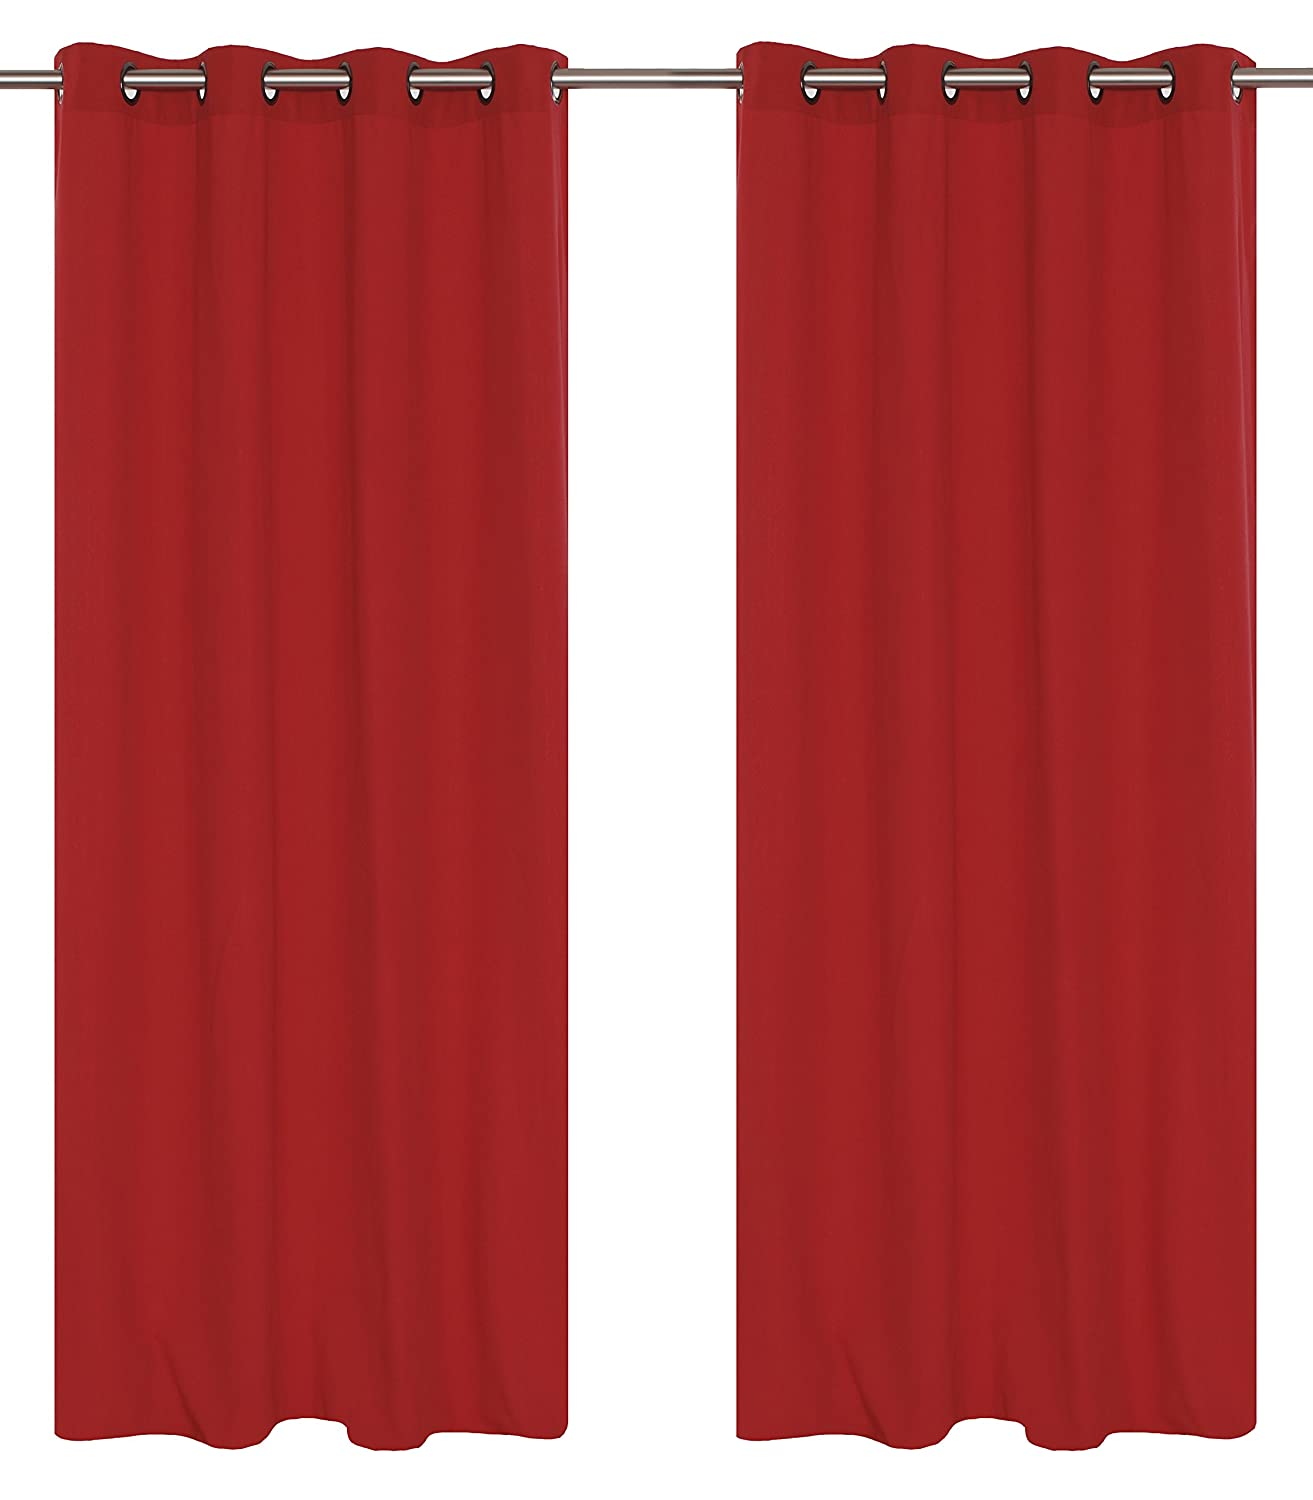 LJ Home Fashions Karma Cotton Like Grommet Curtain Panels Set of 2 54×95-in, Rhubarb Red